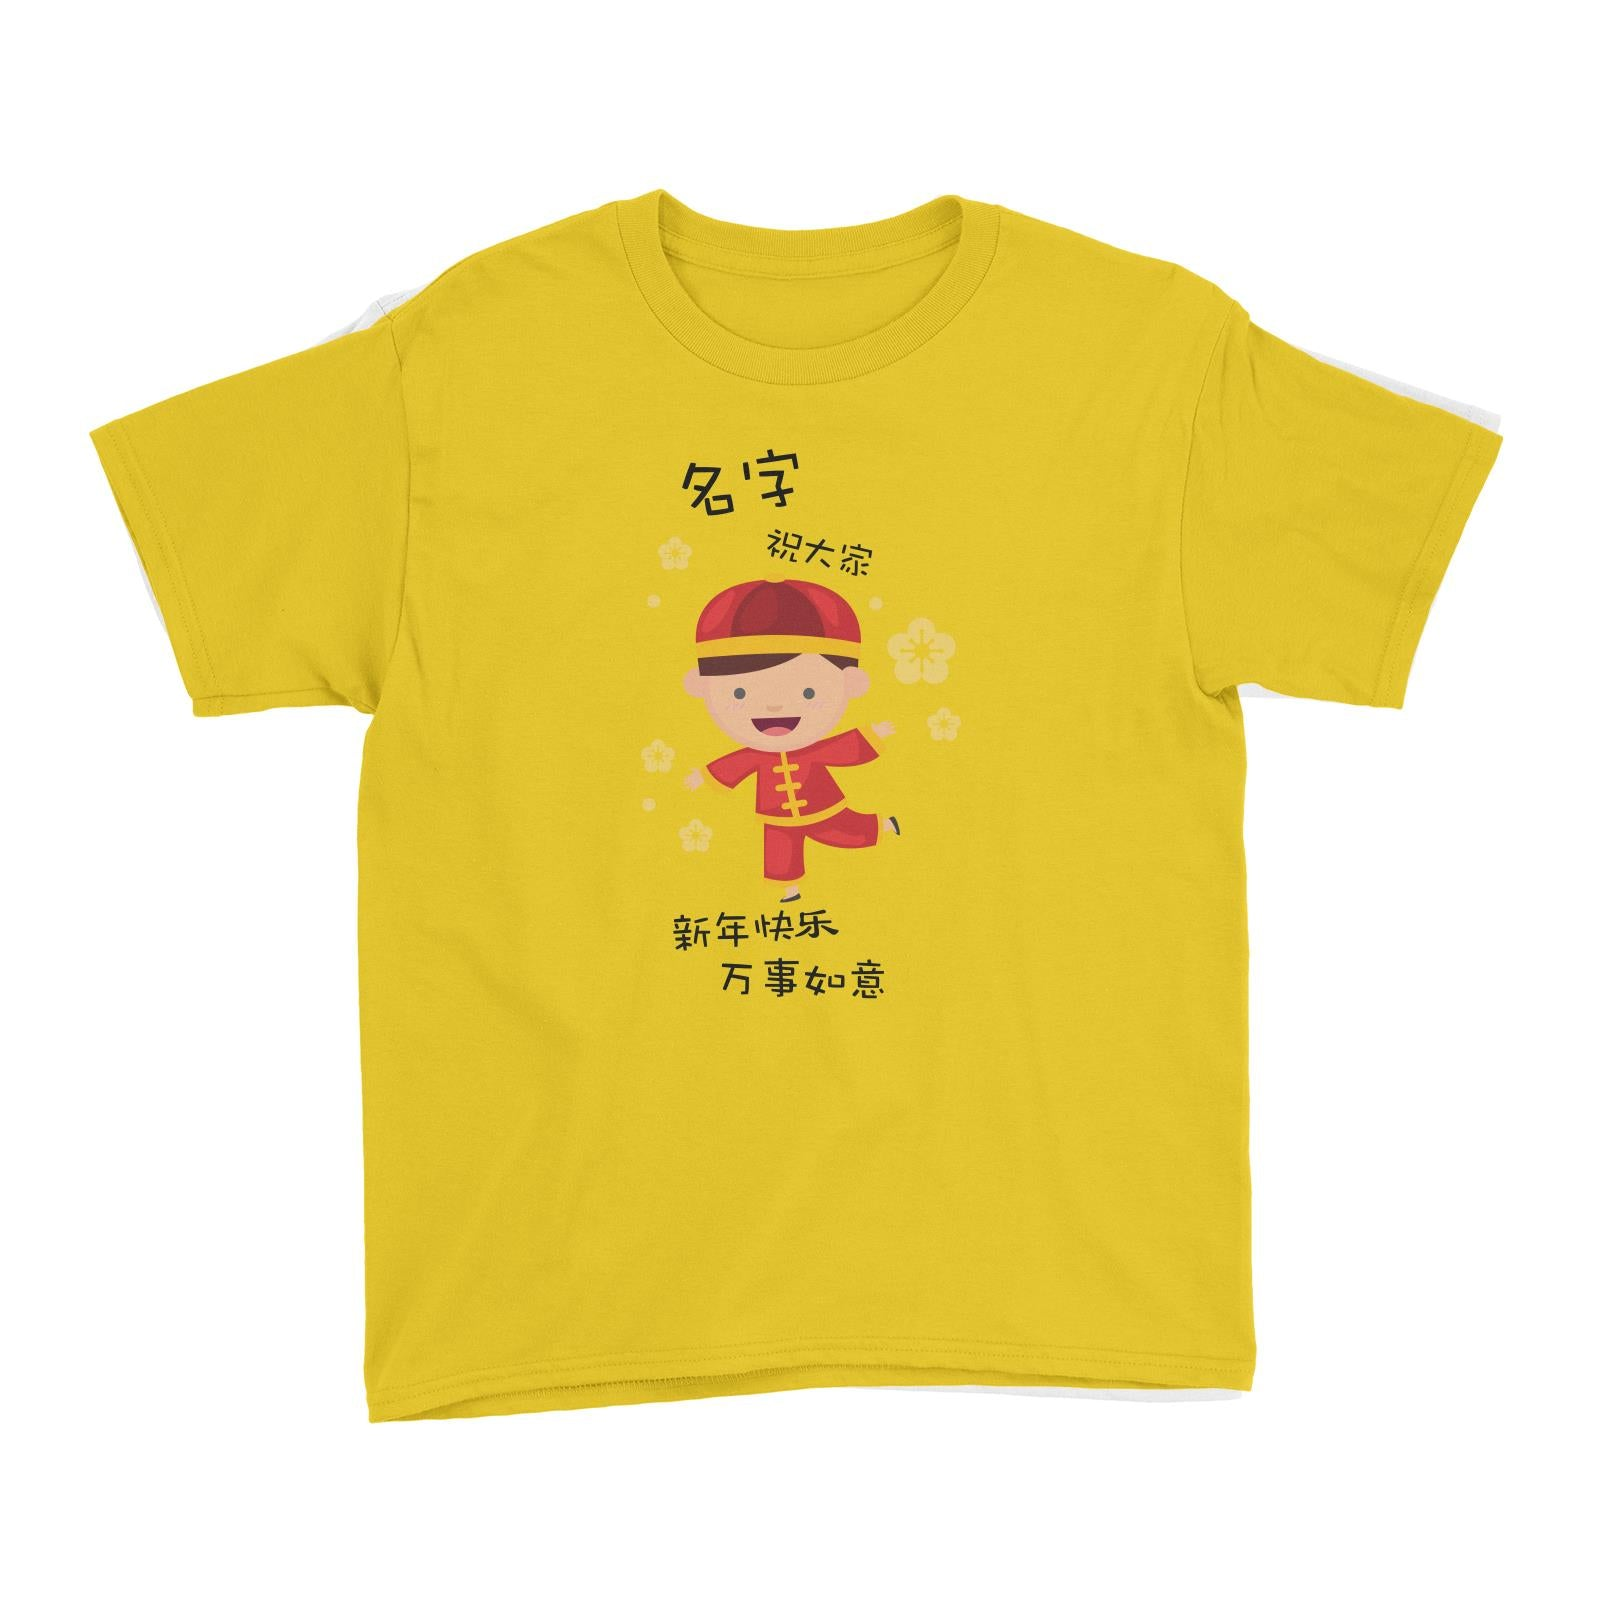 Chinese New Year Cute Boy 2 Wishes Everyone Happy CNY Kid's T-Shirt  Personalizable Designs